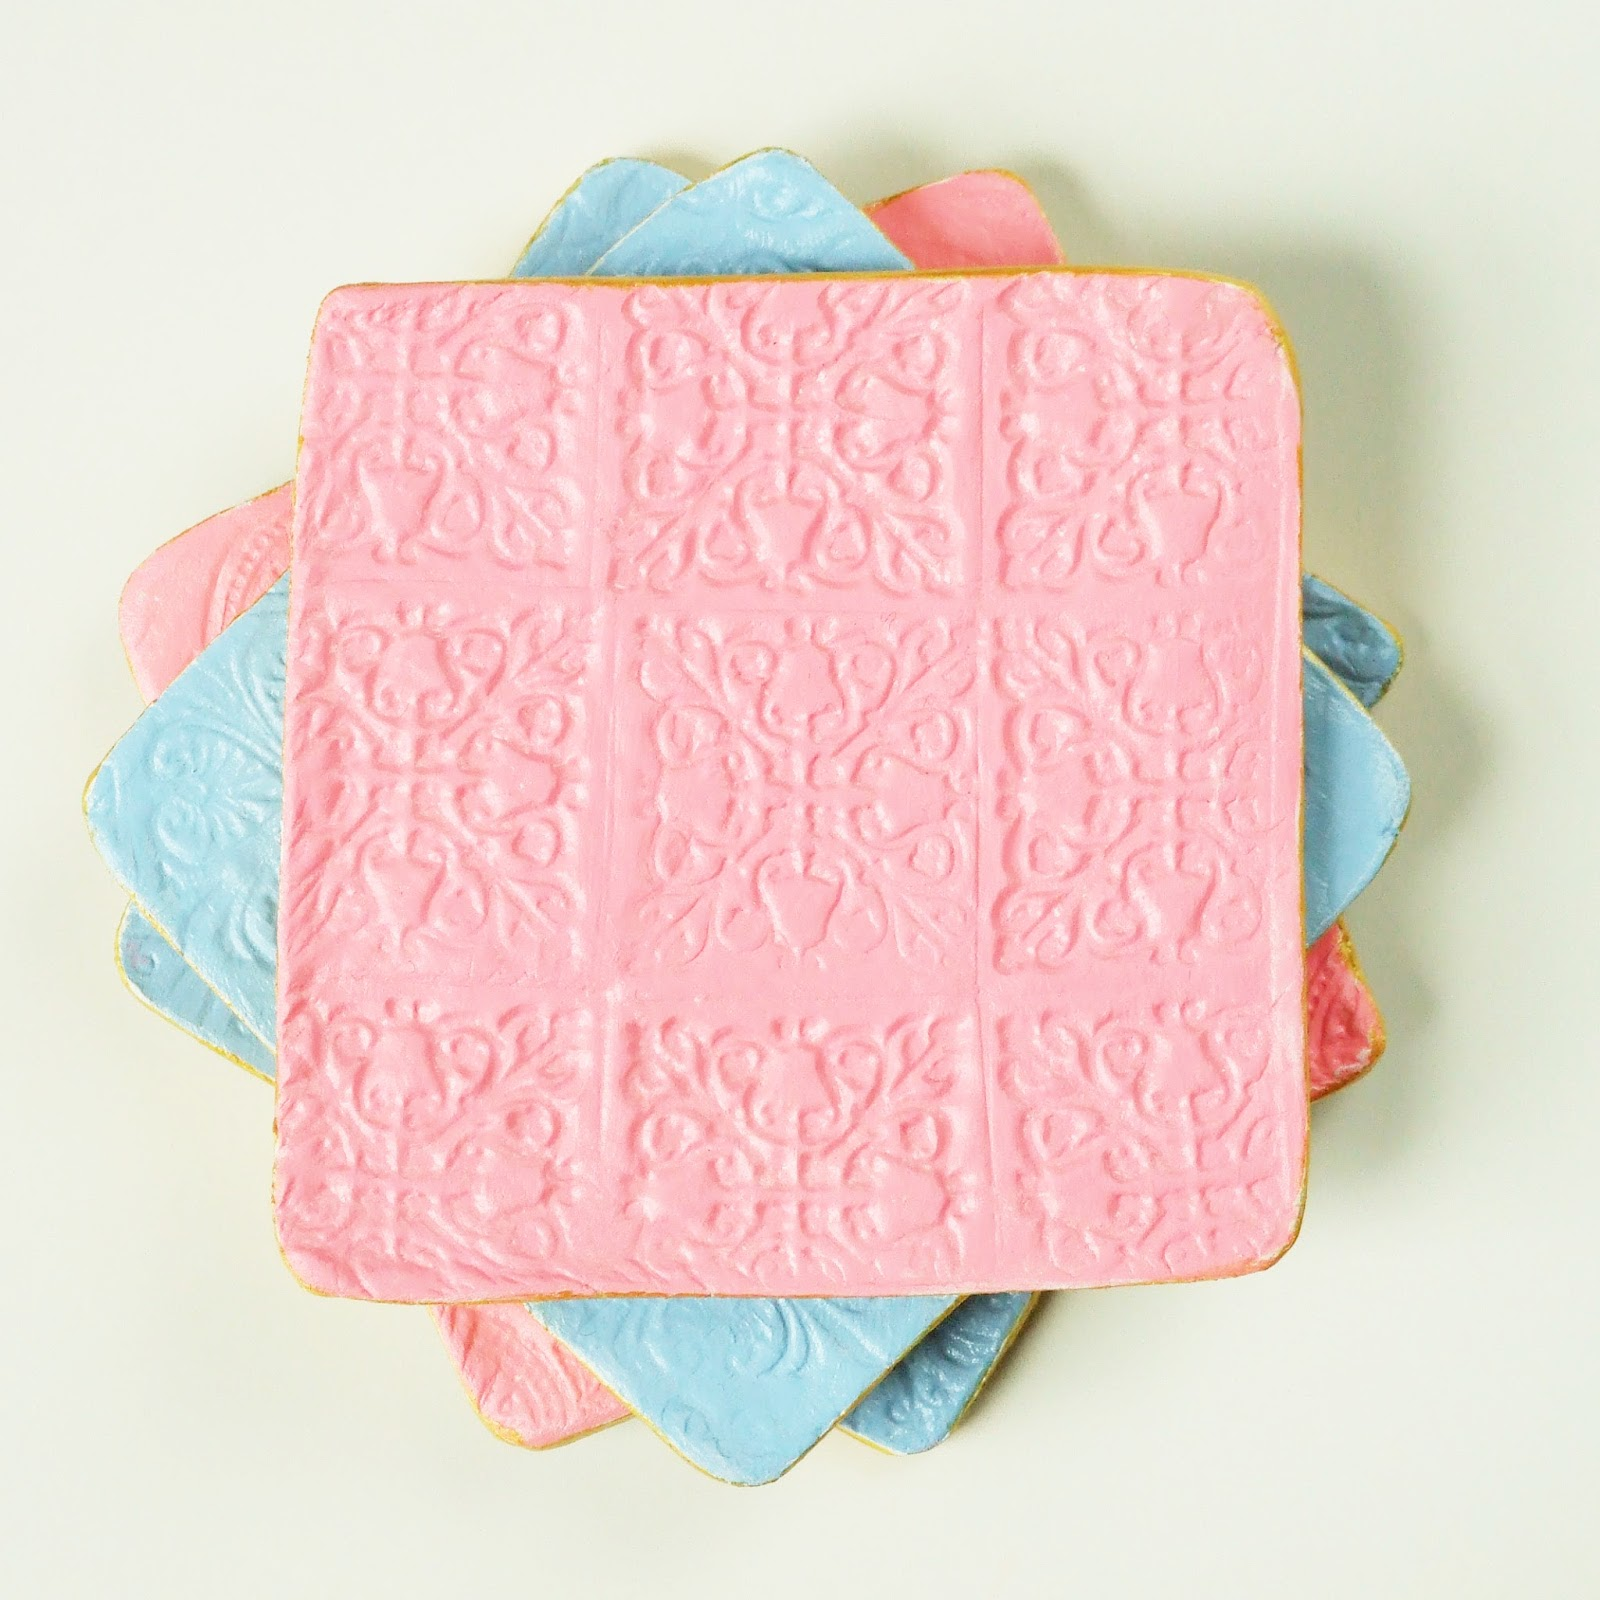 Diy Stamped Clay Coasters.